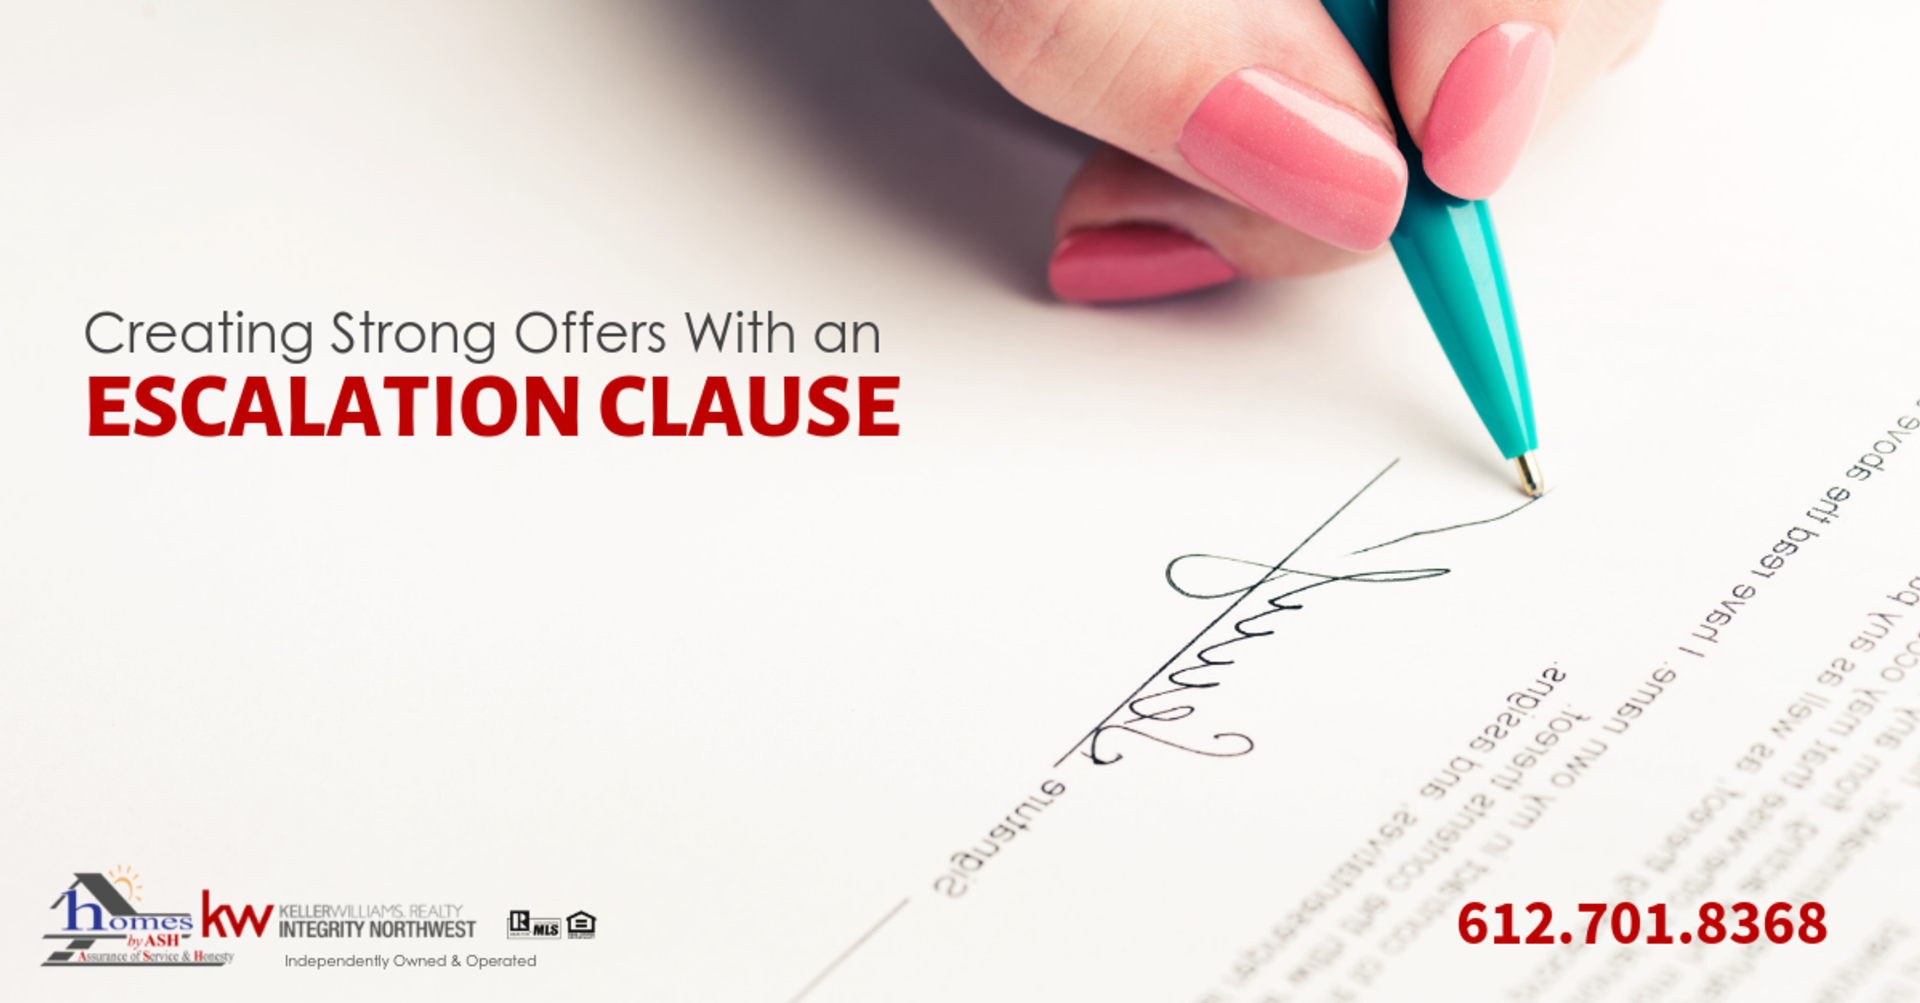 Making Strong Real Estate Offers Using an Escalation Clause